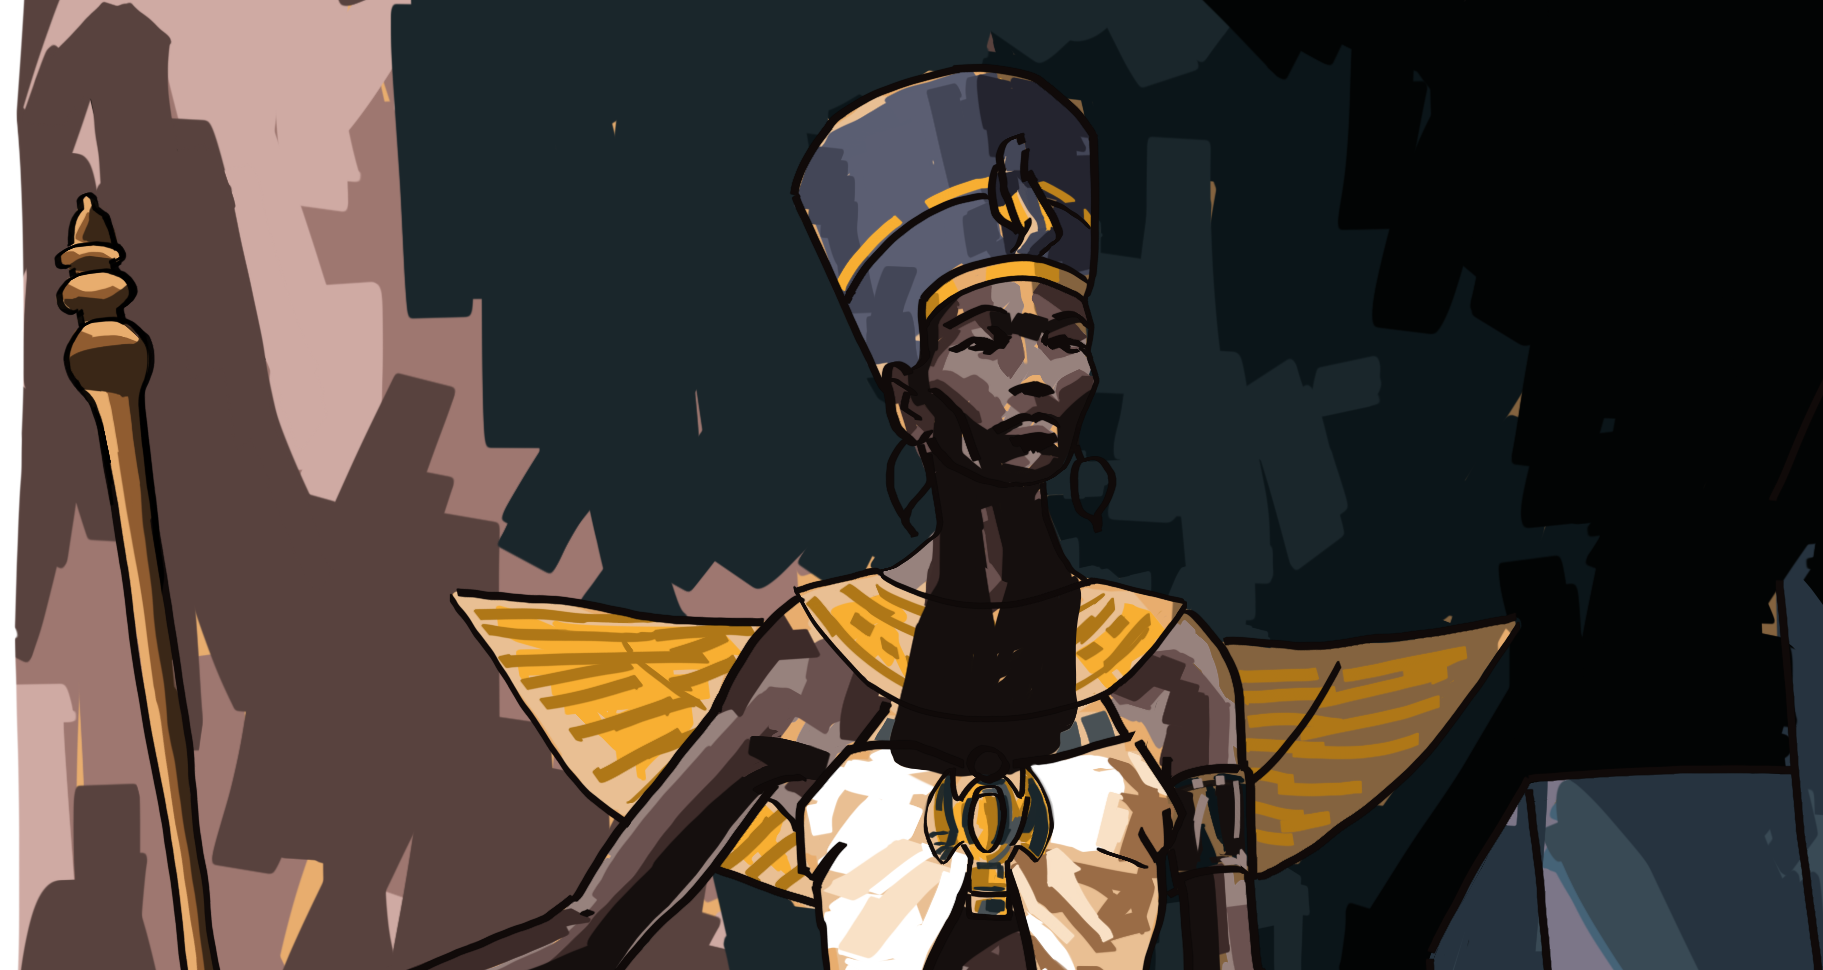 QUEEN-Kemet_Nefertiti